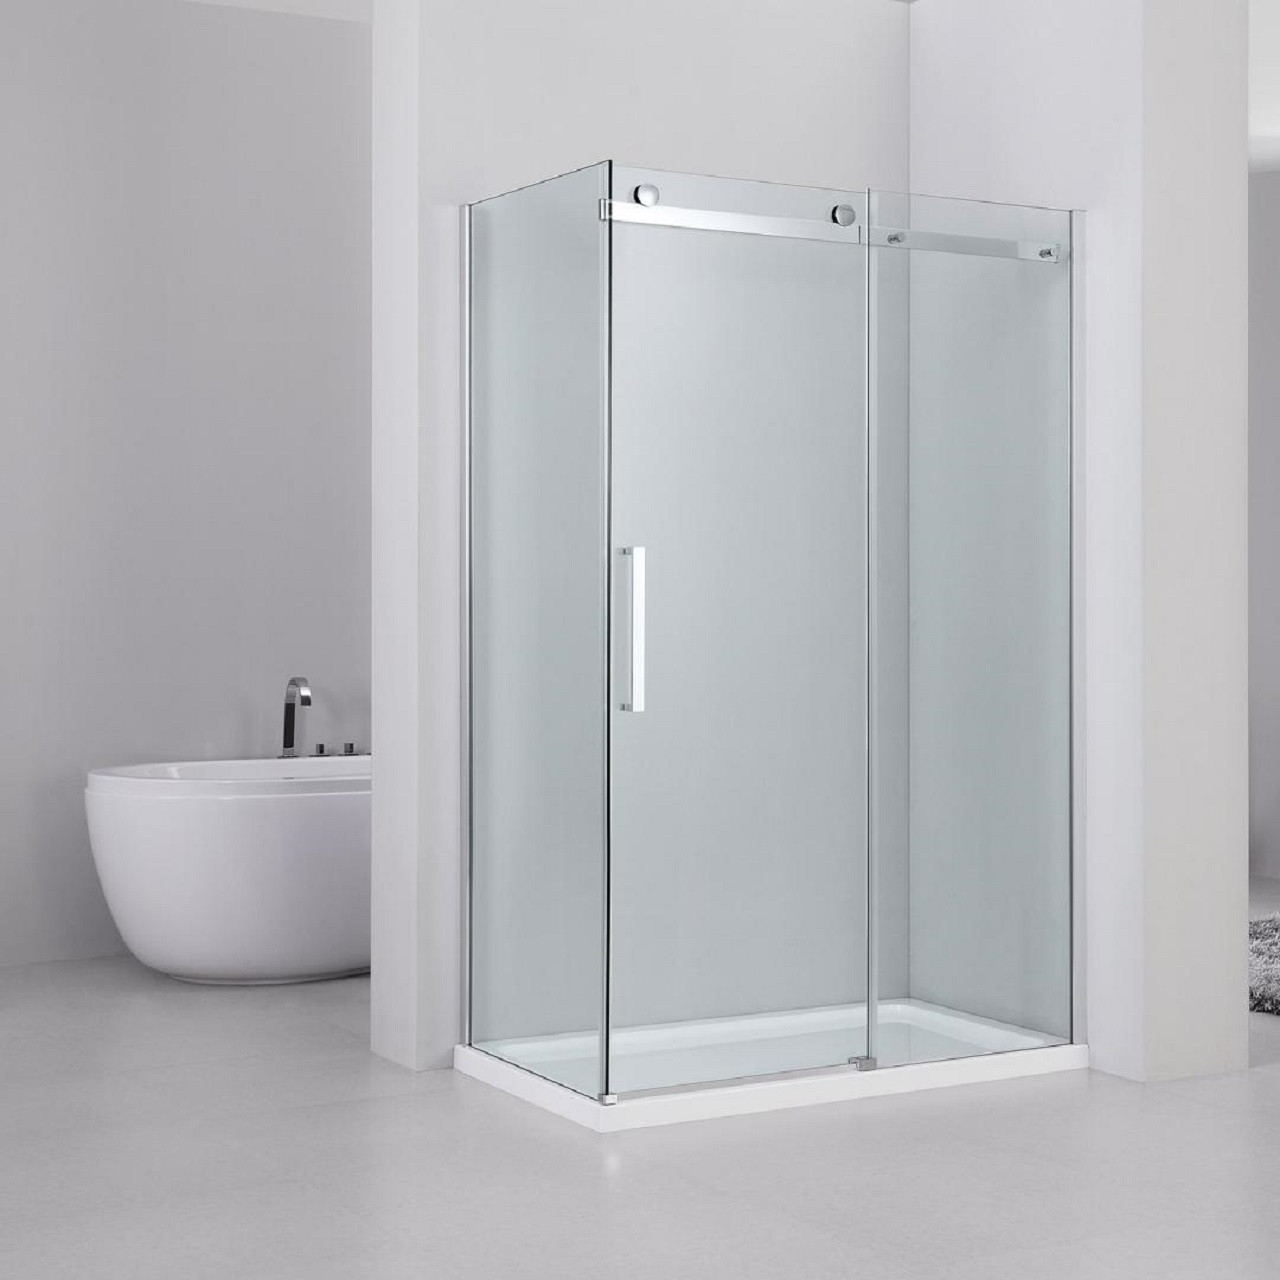 Series 10 Roller 1200mm x 800mm Sliding Door Shower Enclosure £358.25